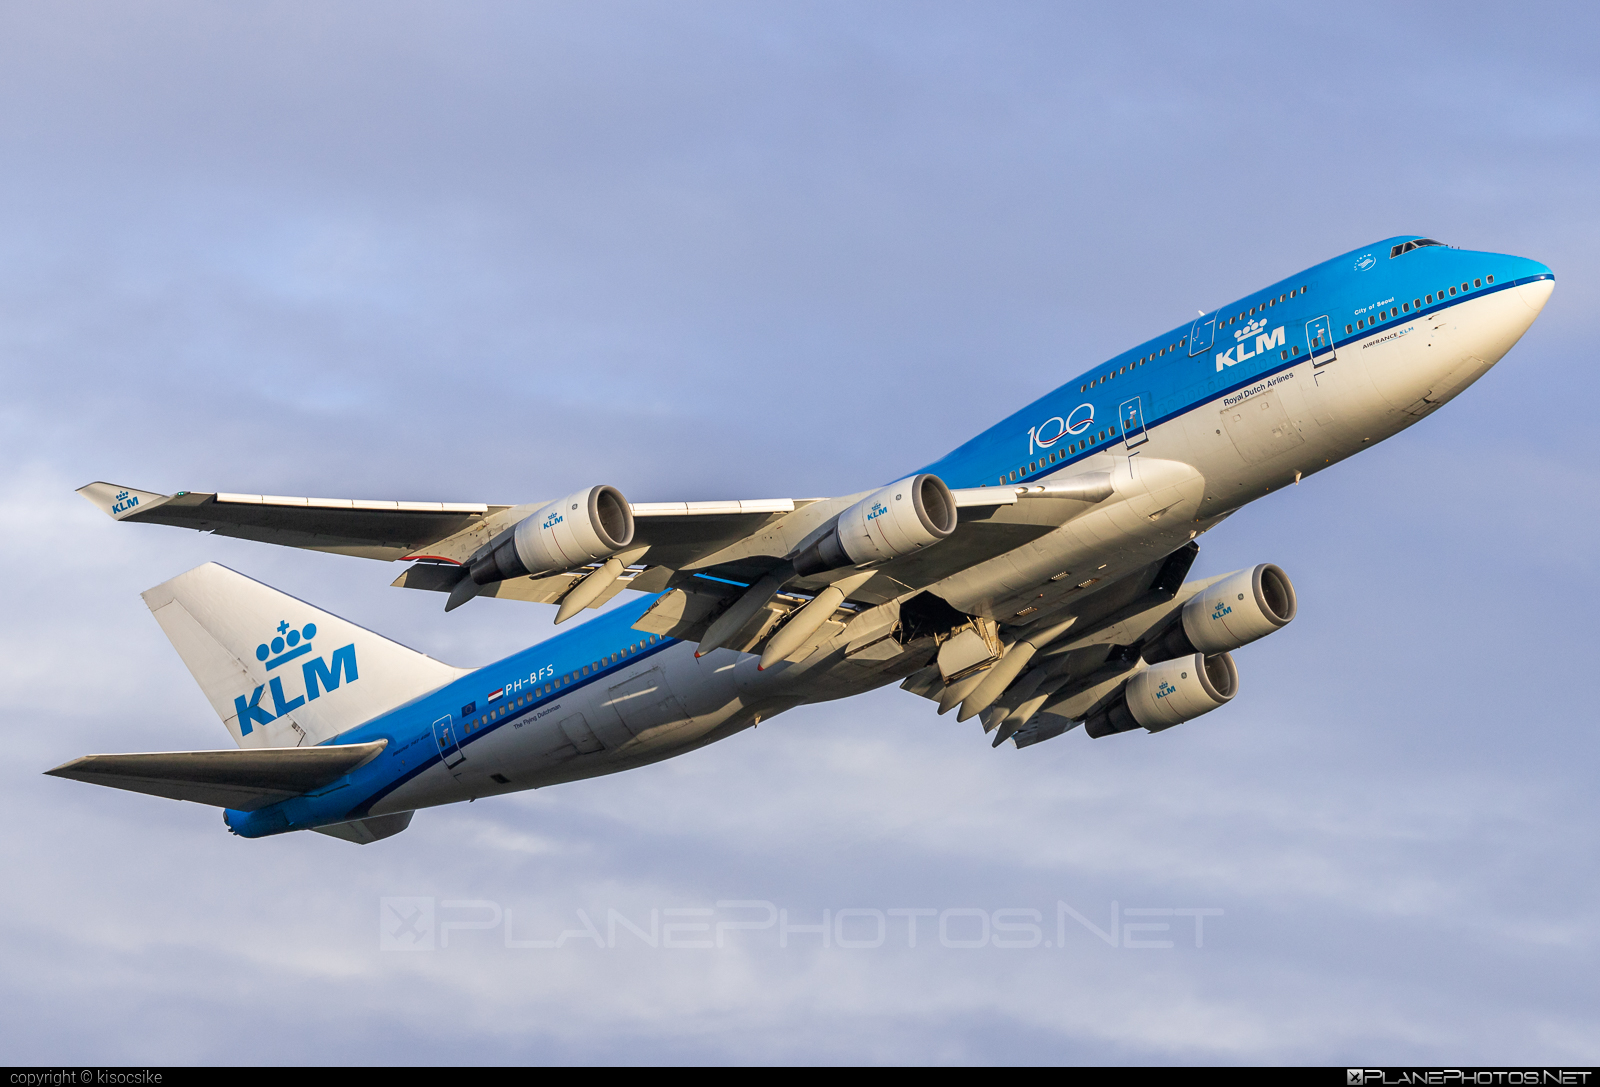 Boeing 747-400M - PH-BFS operated by KLM Royal Dutch Airlines #b747 #b747m #boeing #boeing747 #jumbo #klm #klmroyaldutchairlines #royaldutchairlines